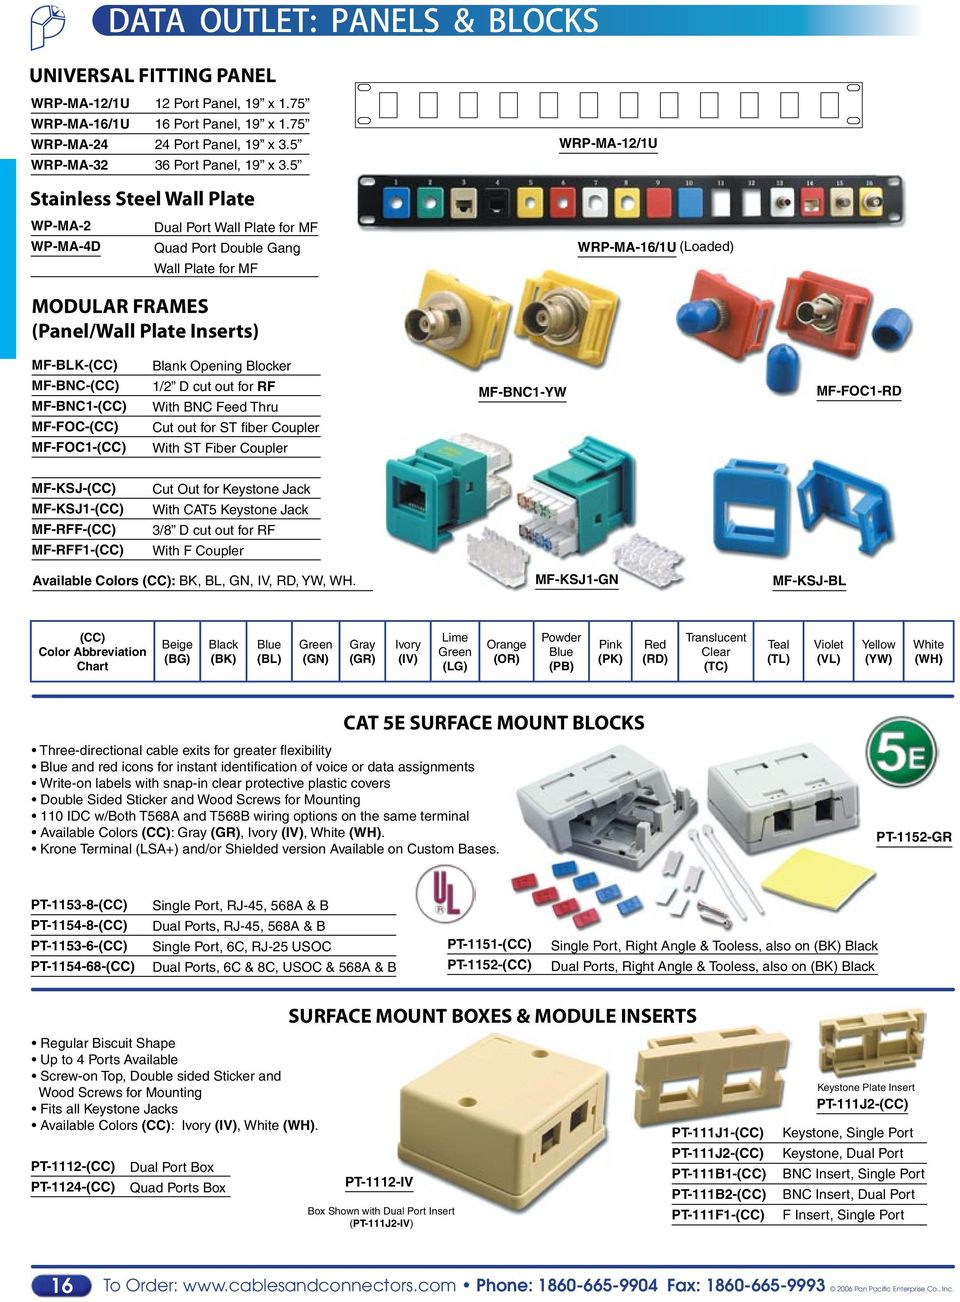 Voice Data Communication Components Accessories Pdf Cat 3 Jack Wiring Diagram Wall Plate For Mf Wrp Ma 12 1u 16